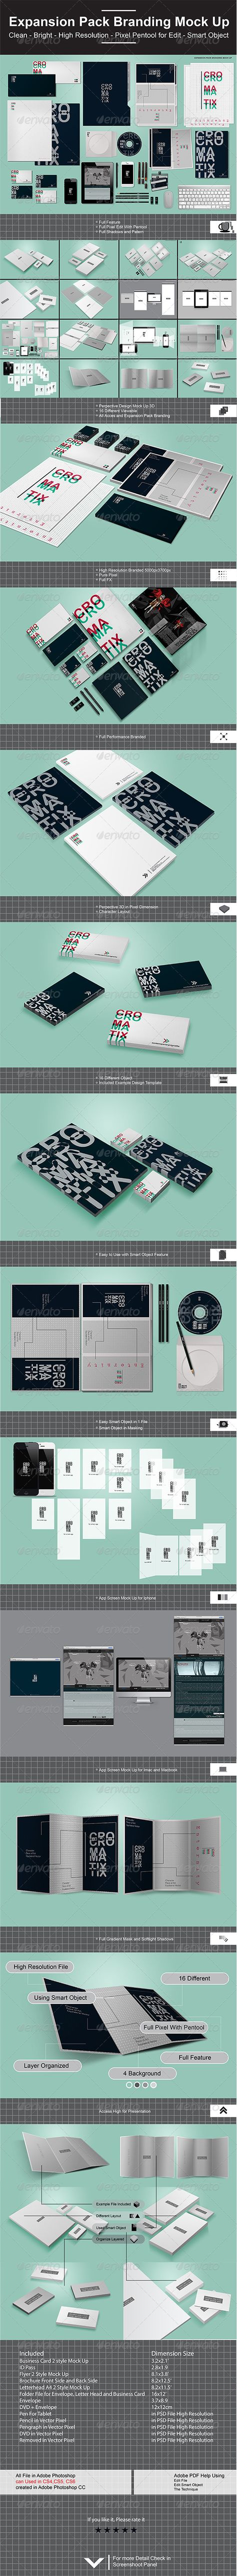 Expansion Pack Branding Mock Up